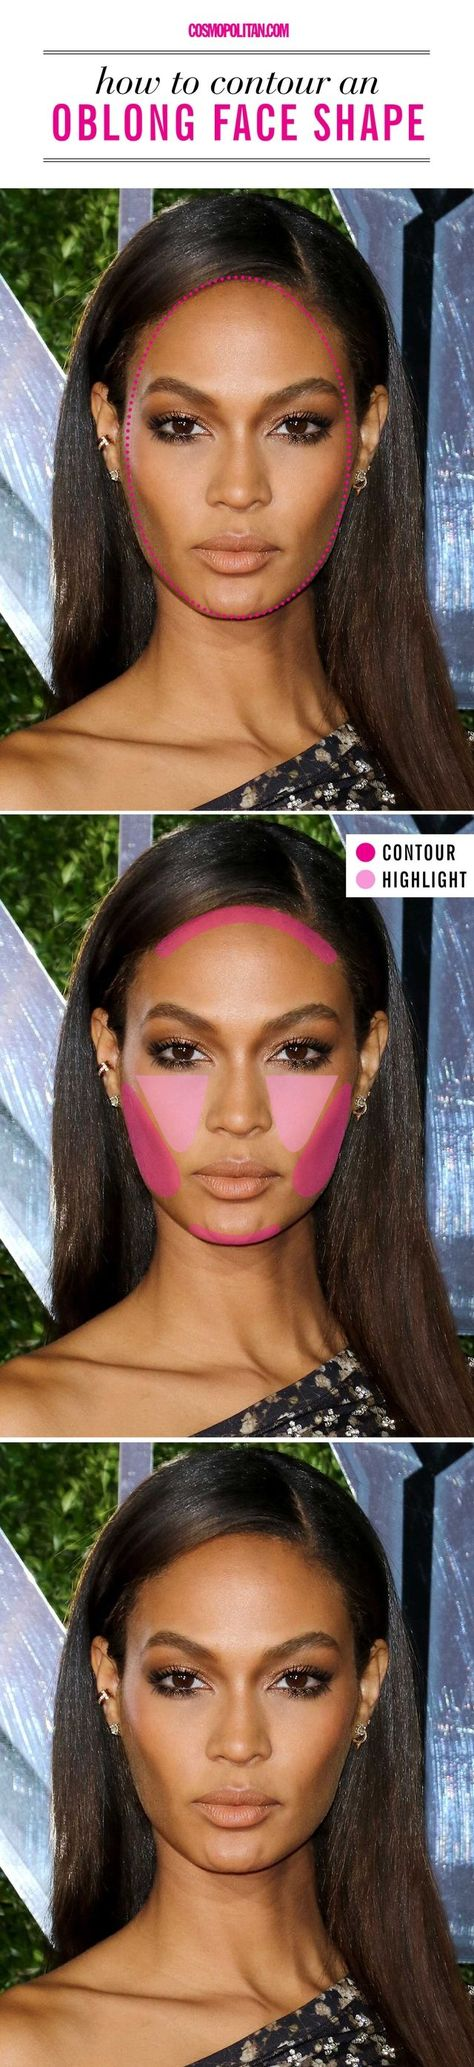 How to Contour and Highlight for Your Face Shape Oblong